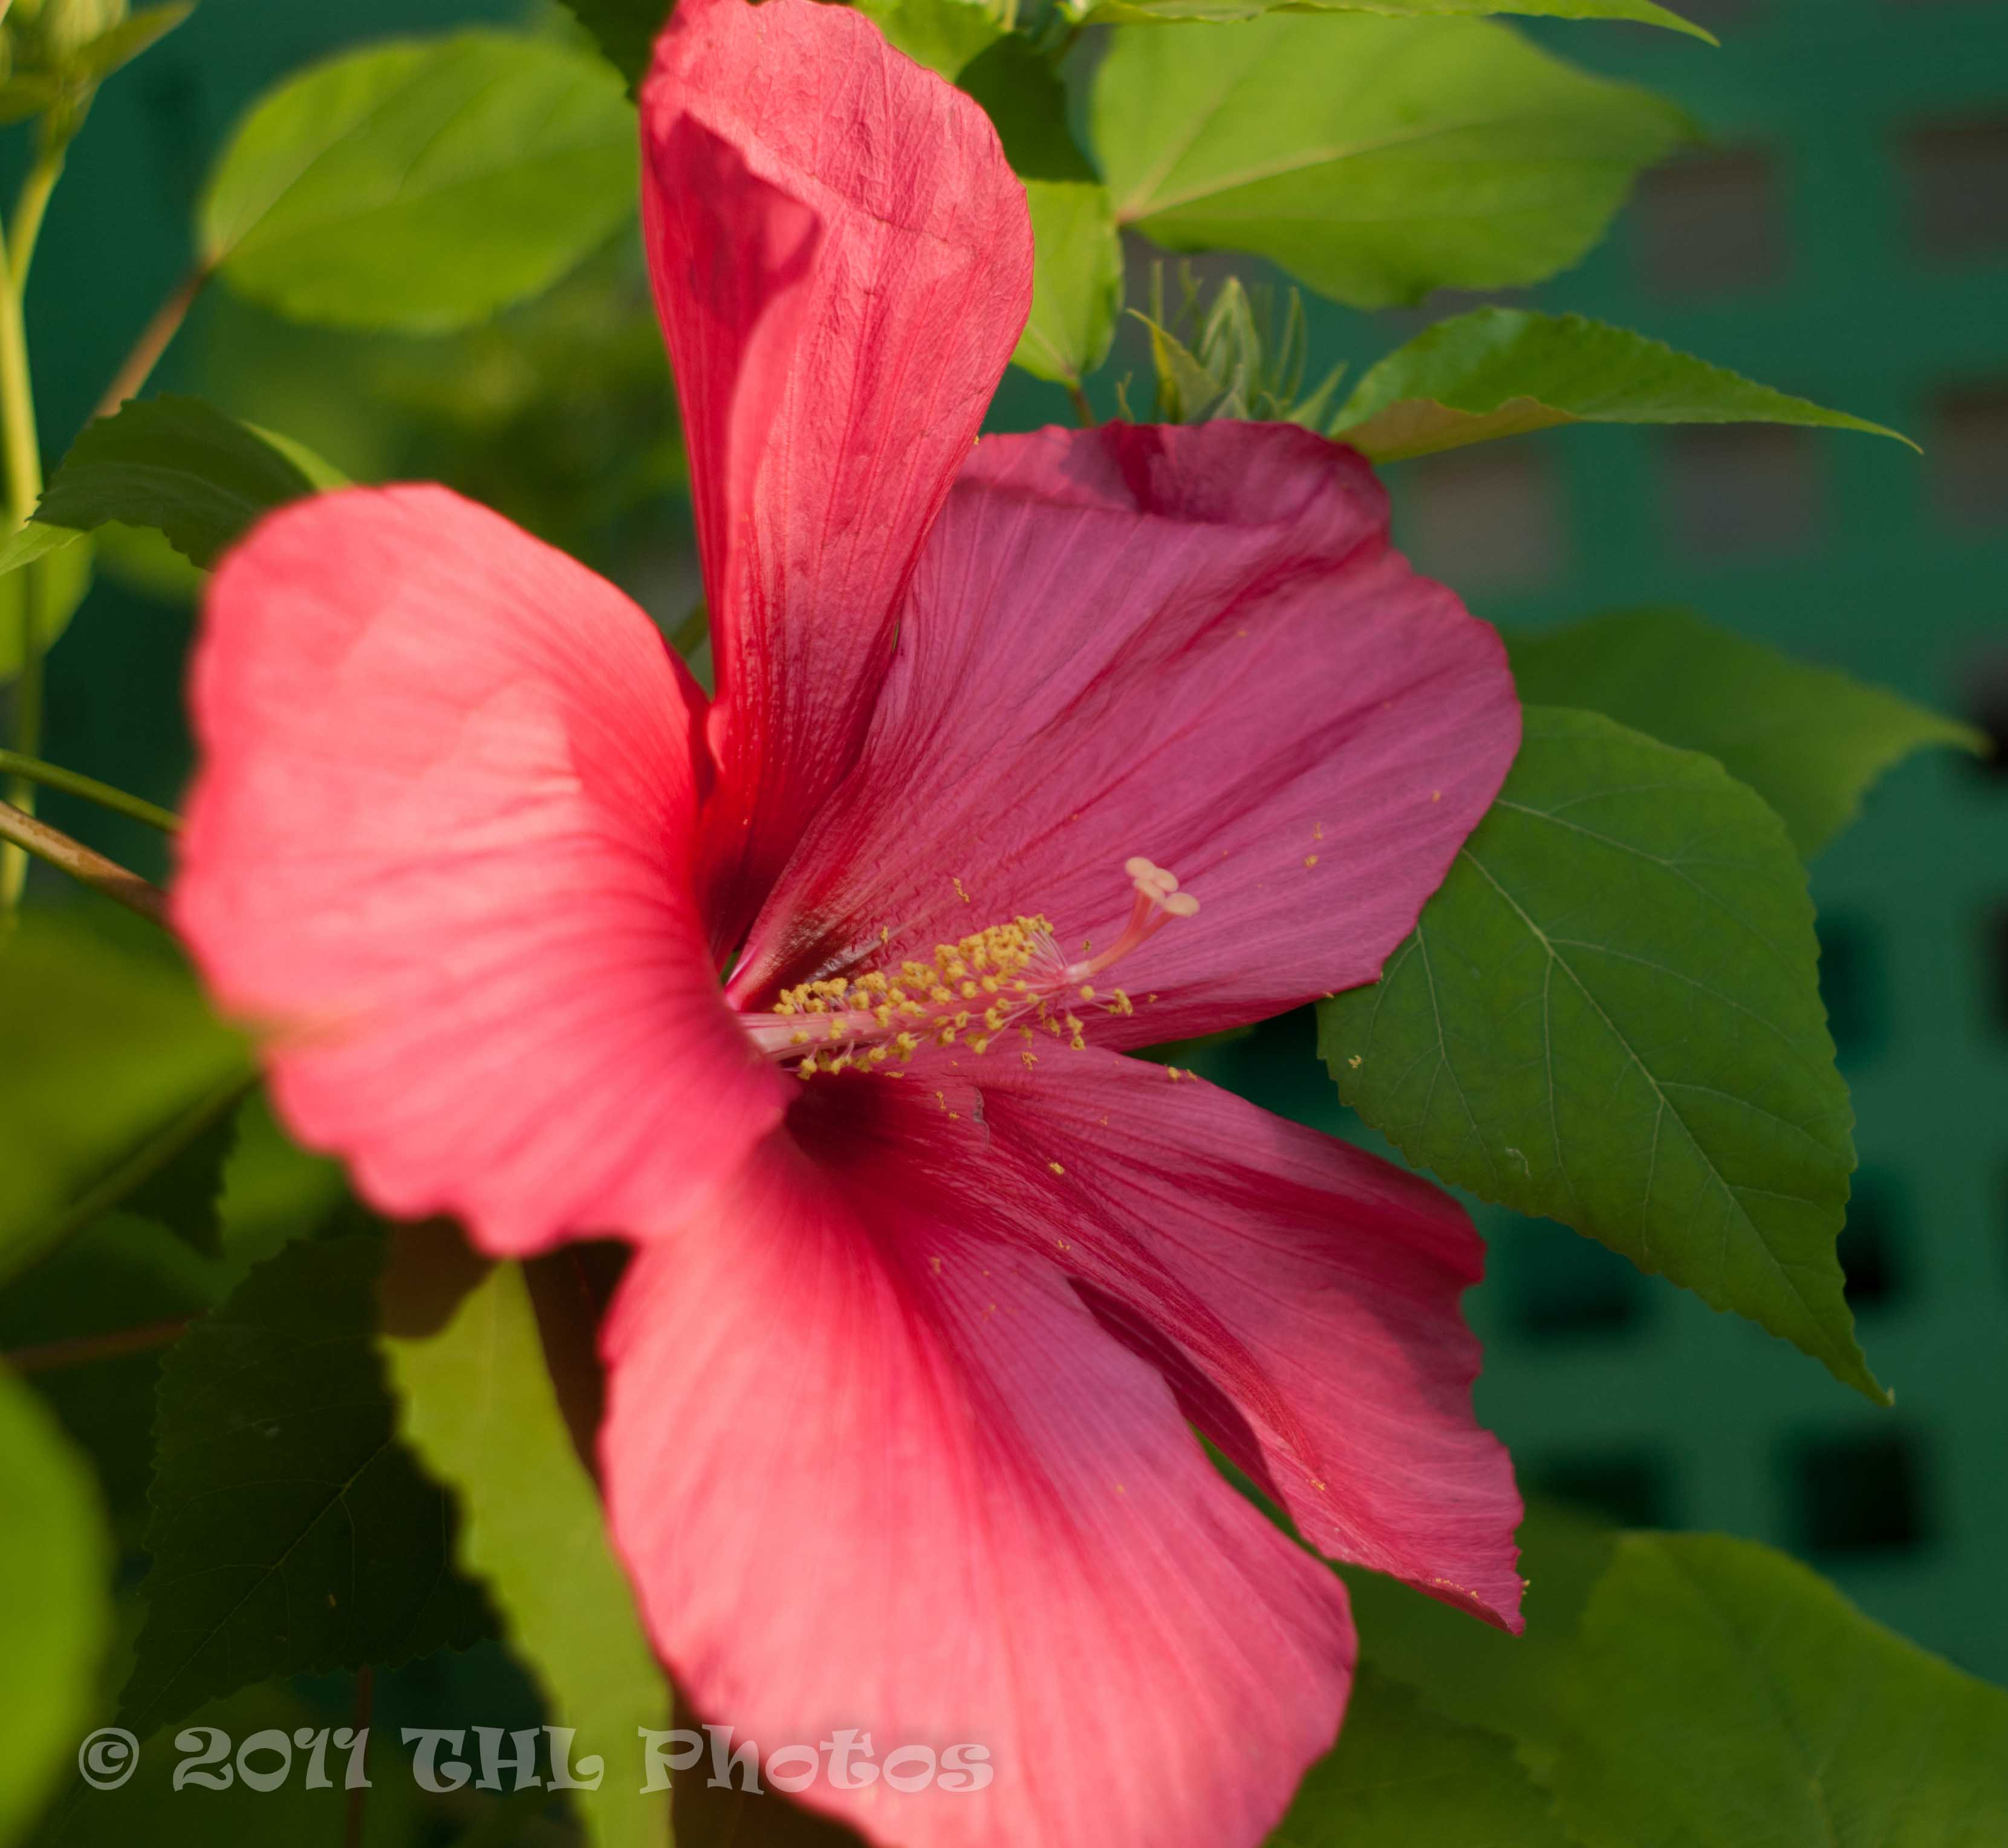 The Moy Grande Hibiscus Blooming At The Carriage House Bed